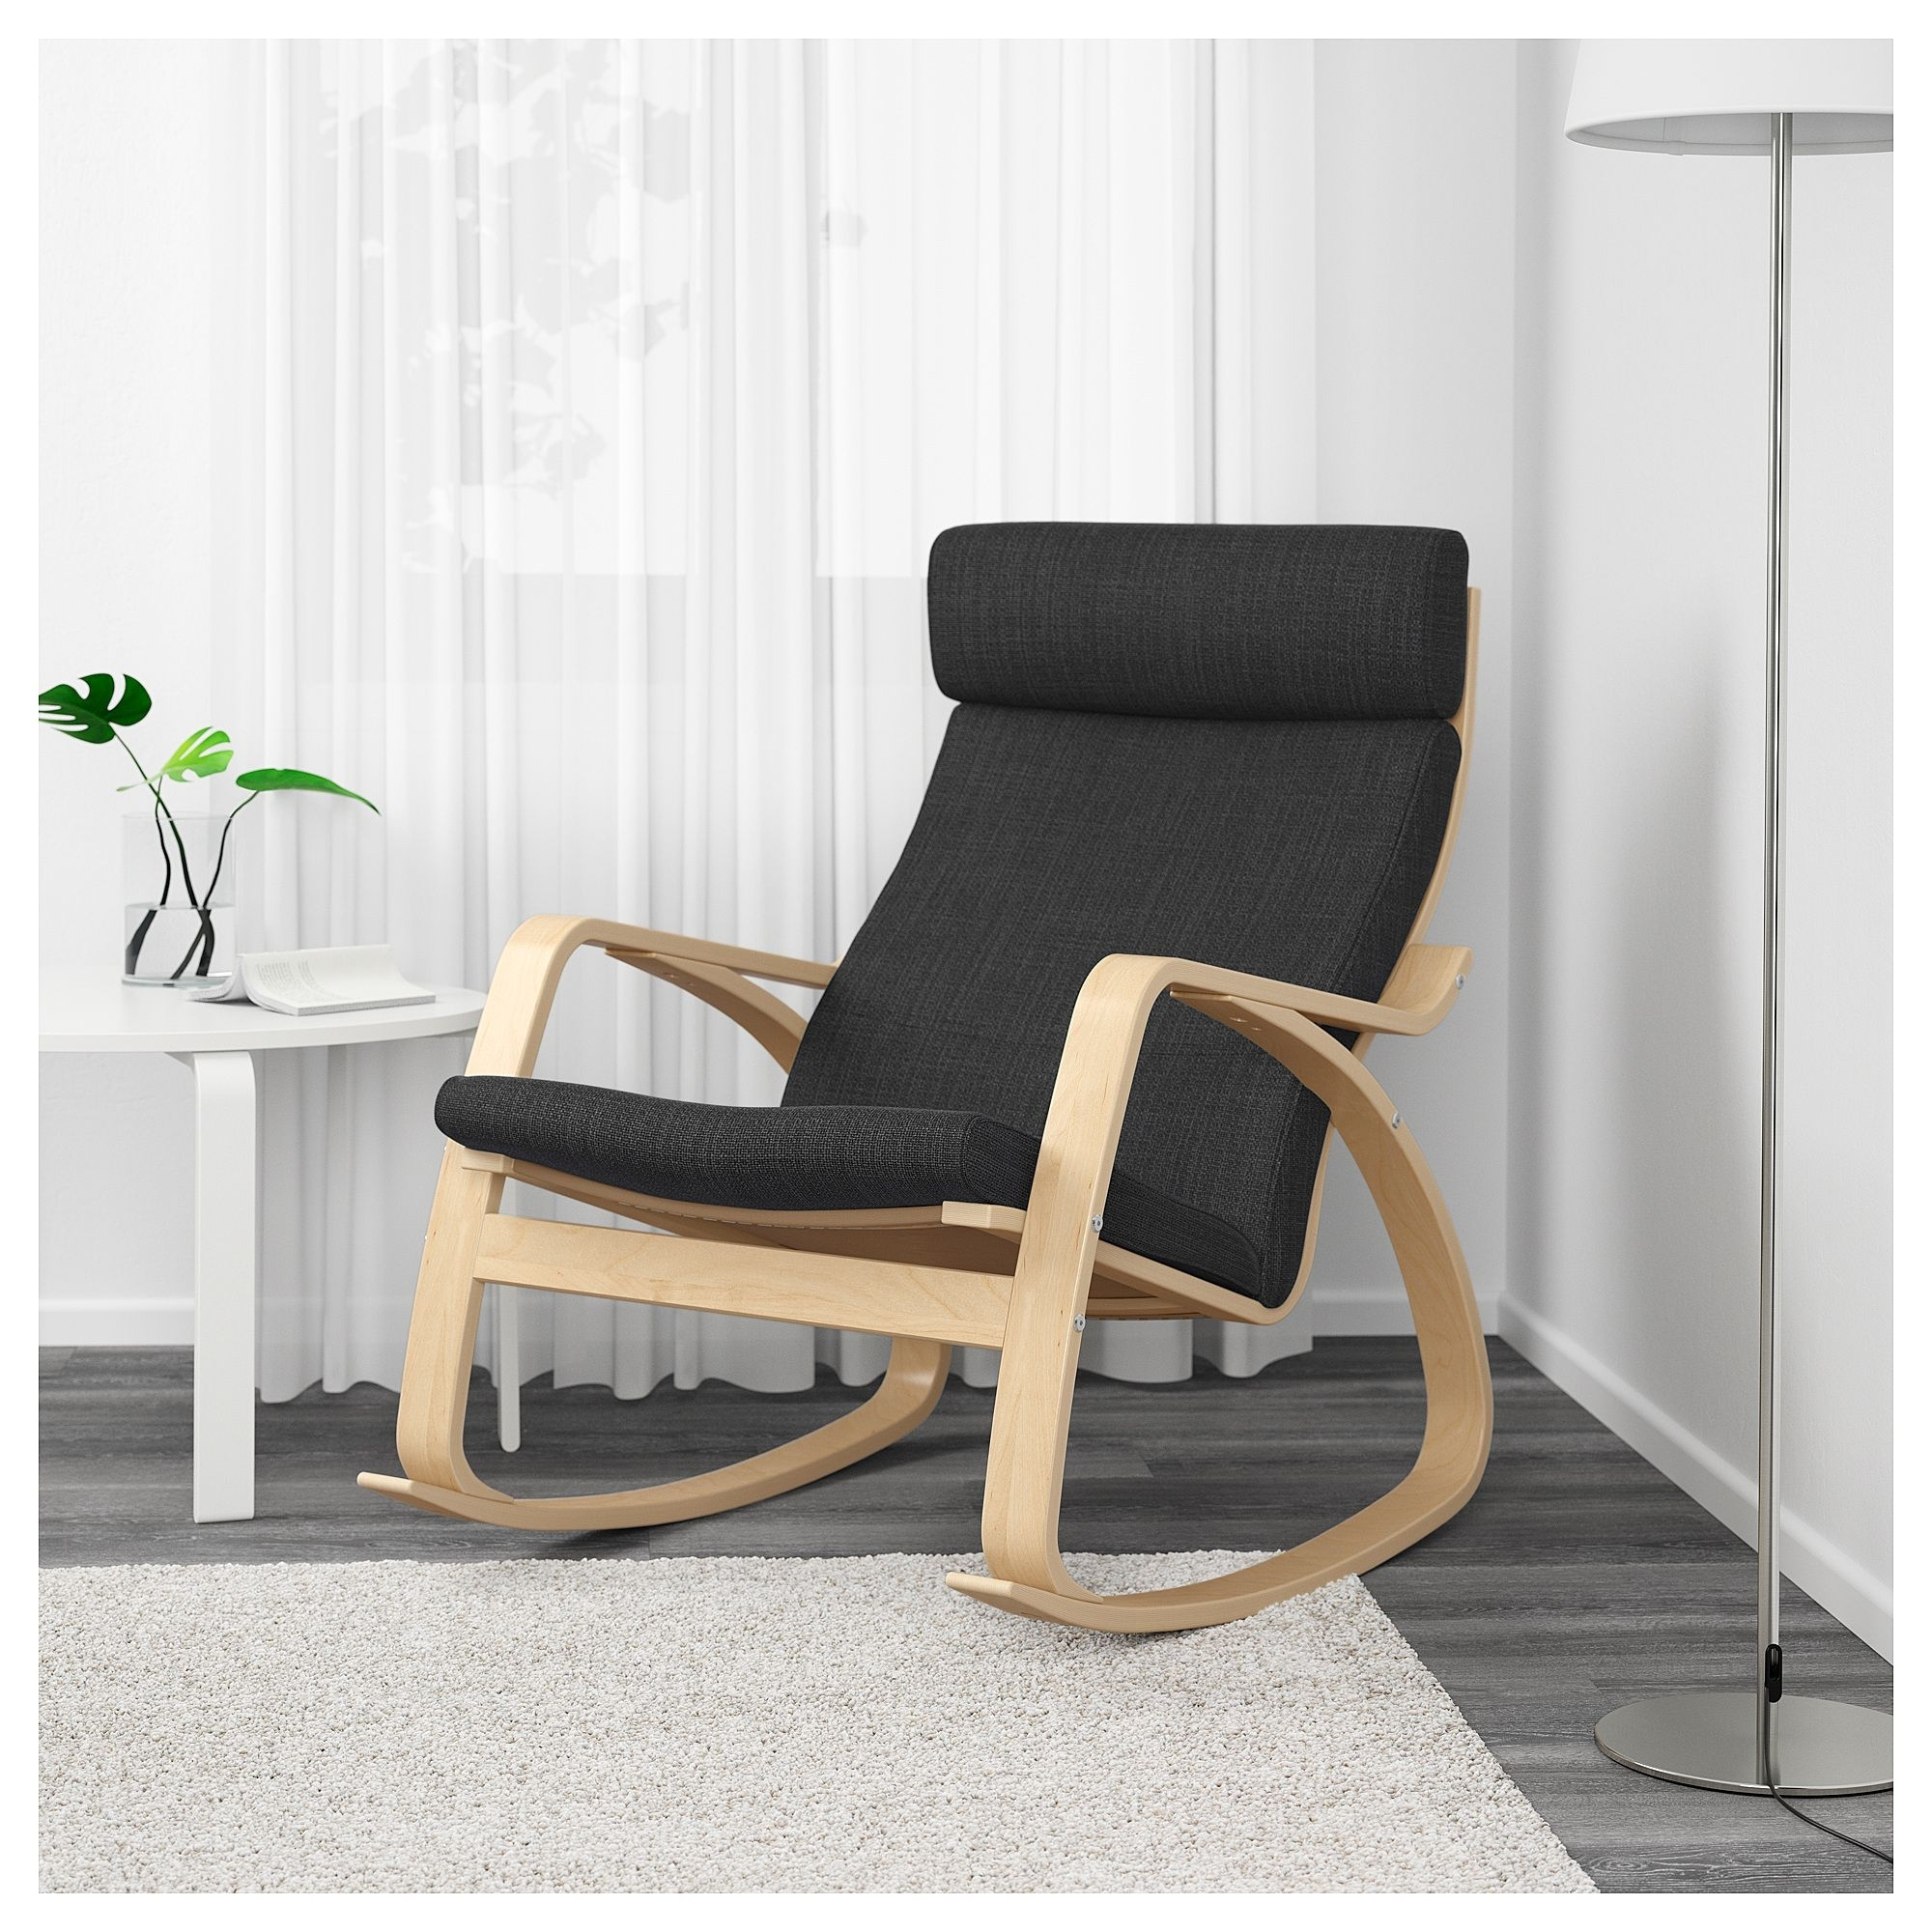 Ikea – Poäng Rocking Chair Birch Veneer, Hillared Anthracite Intended For Ikea Rocking Chairs (#6 of 15)